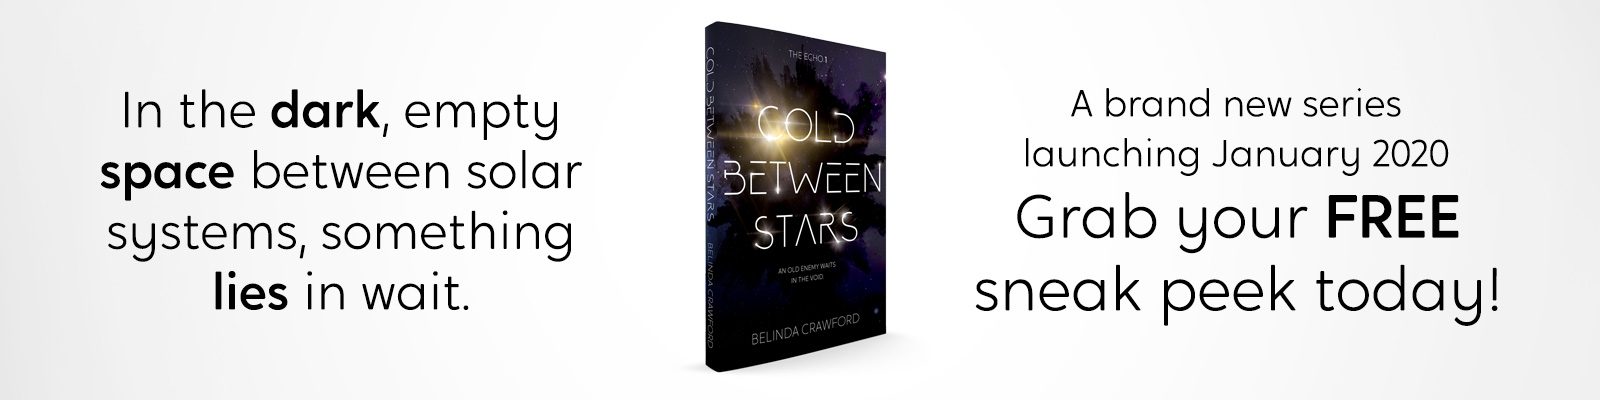 A new sci-fi trilogy launching Jan 2020. Grab your sneak peek today!